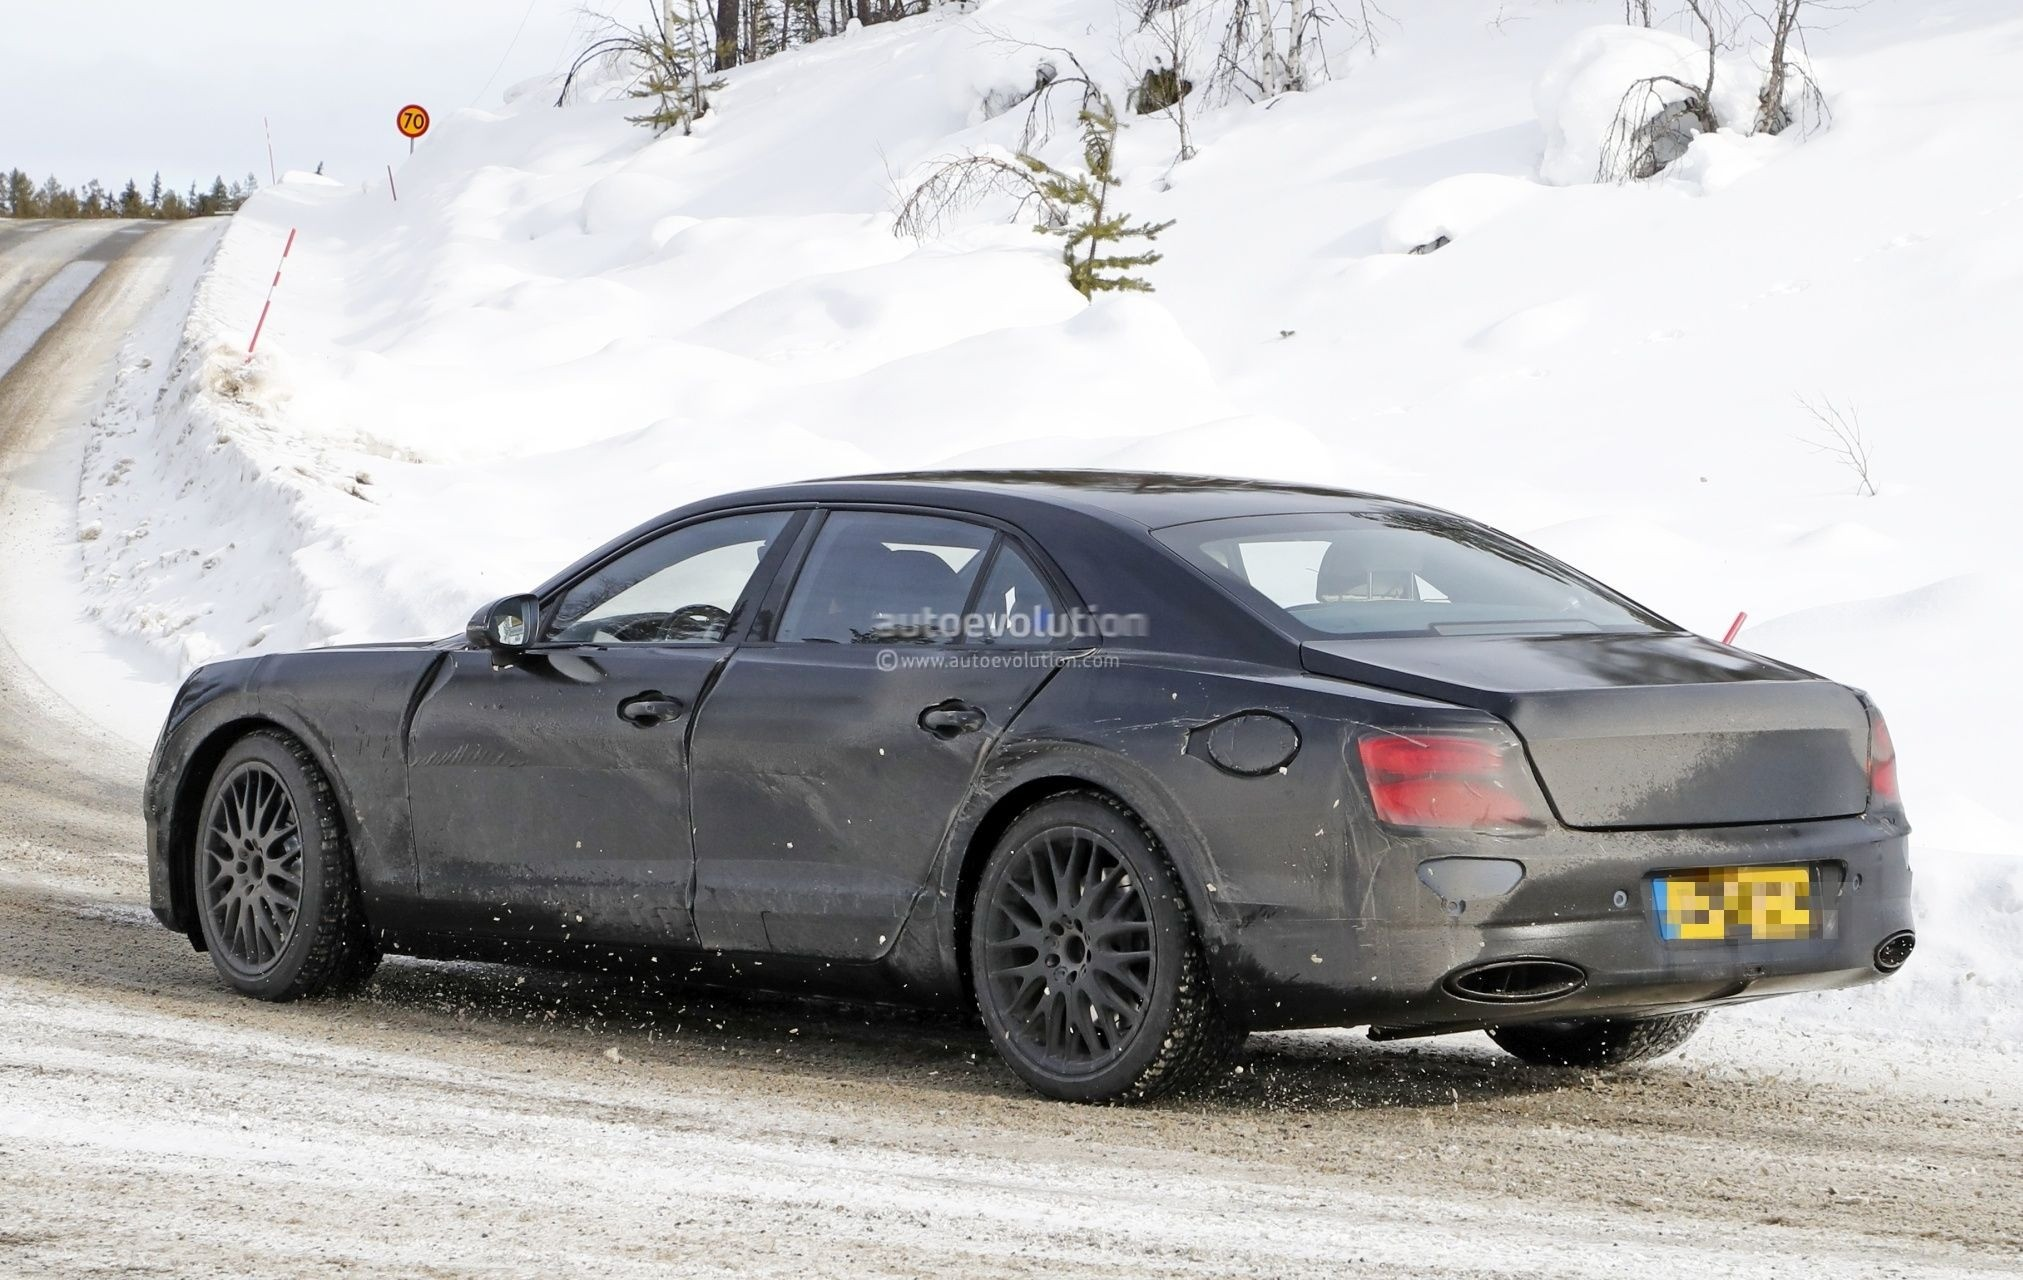 Spyshots 2020 Bentley Flying Spur Hybrid Uncovered By Charging Port